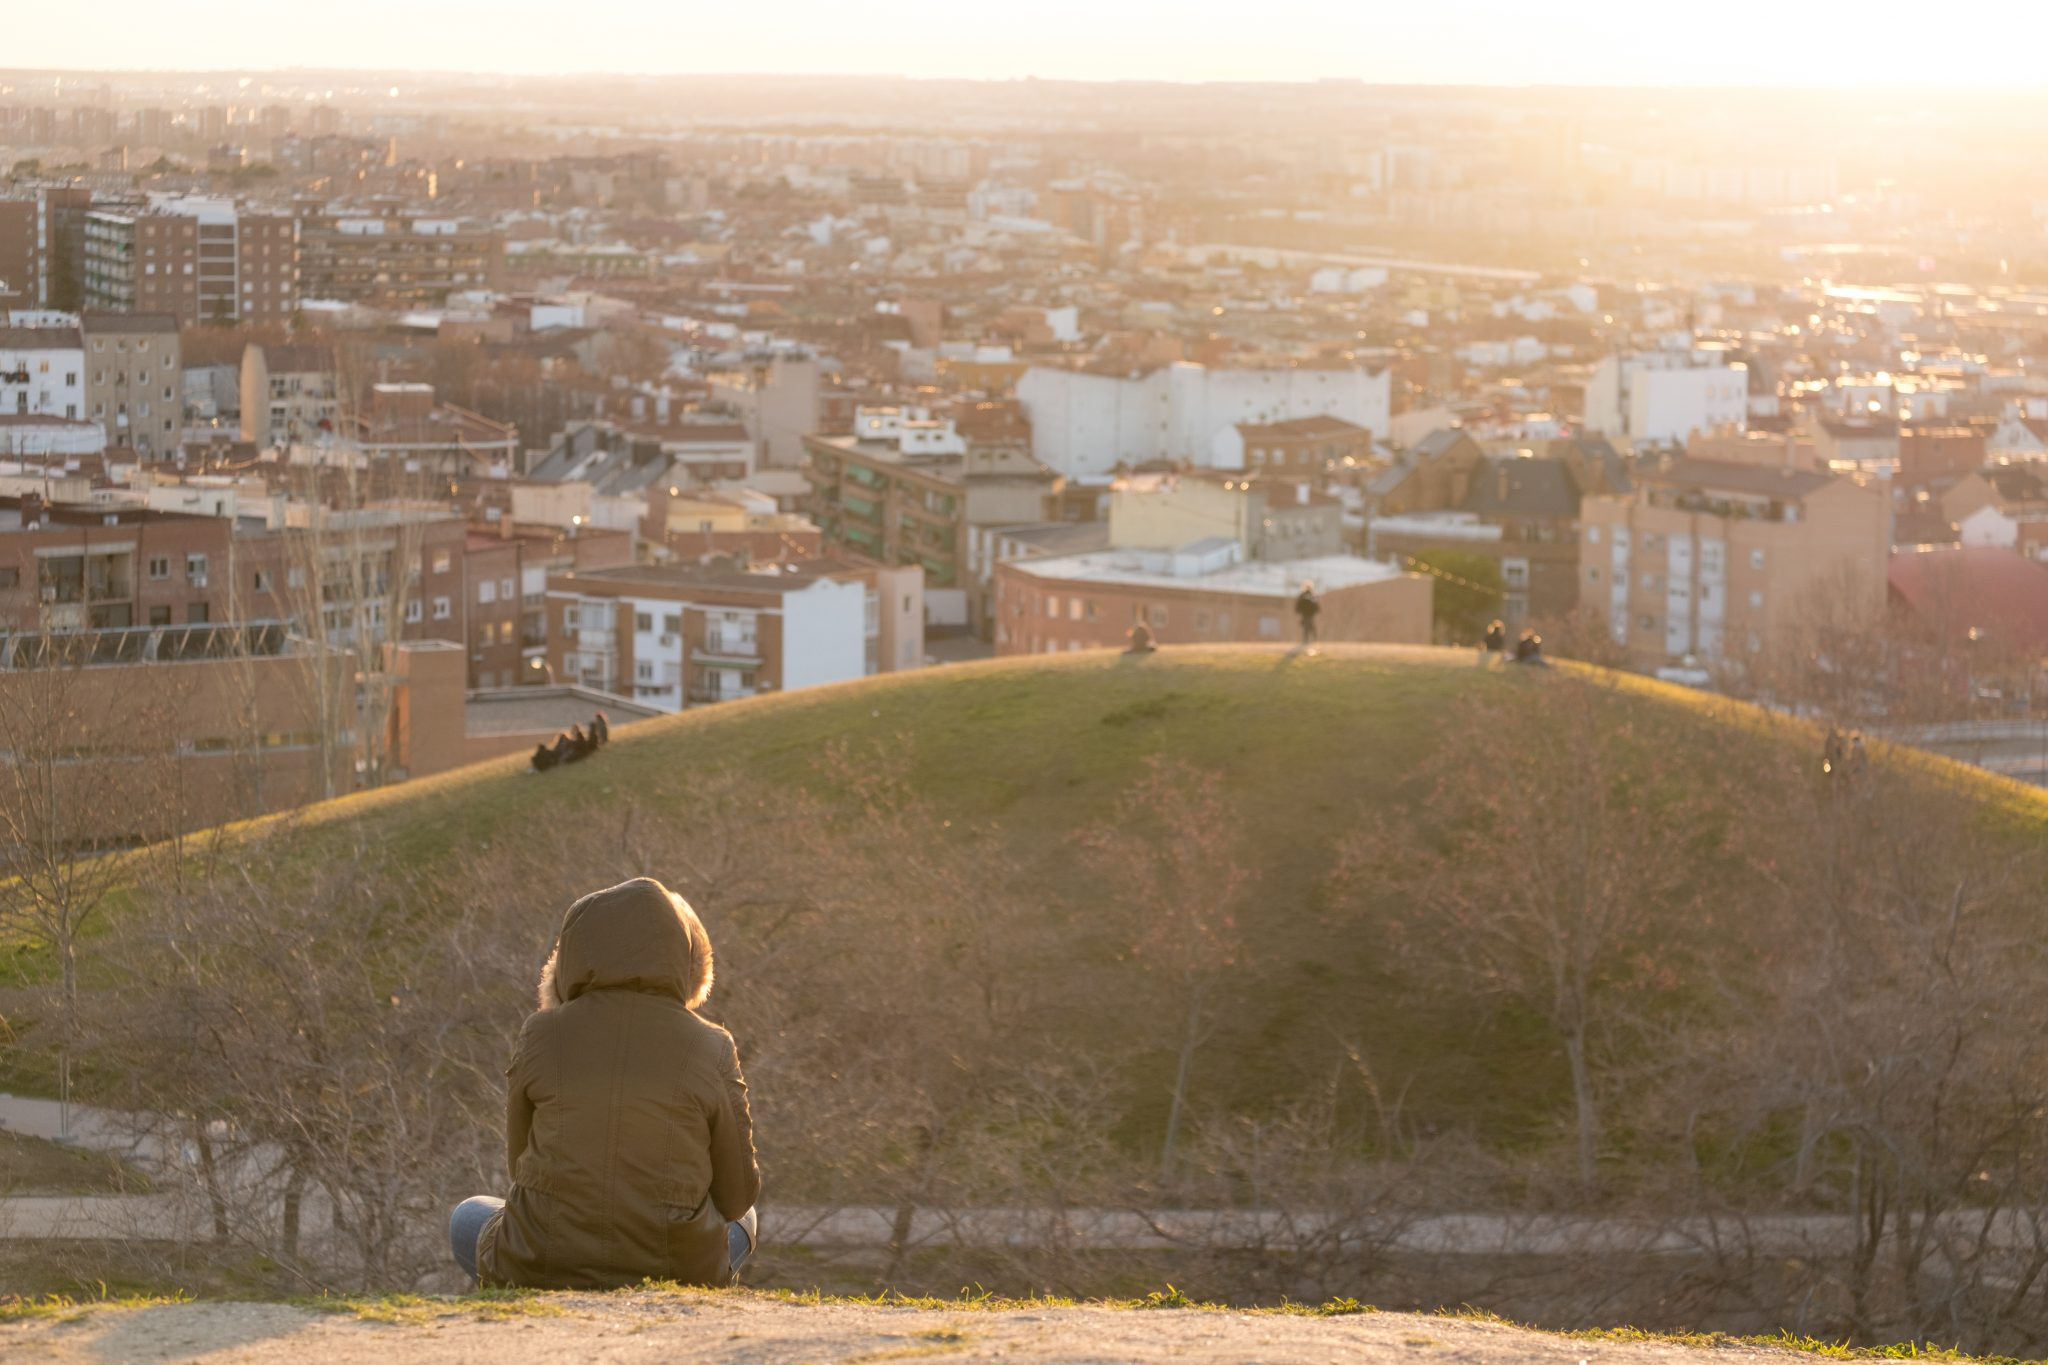 A women sitting in the parque de las siete tetas at sunset with the city of Madrid in the background photo by Jo Kassis